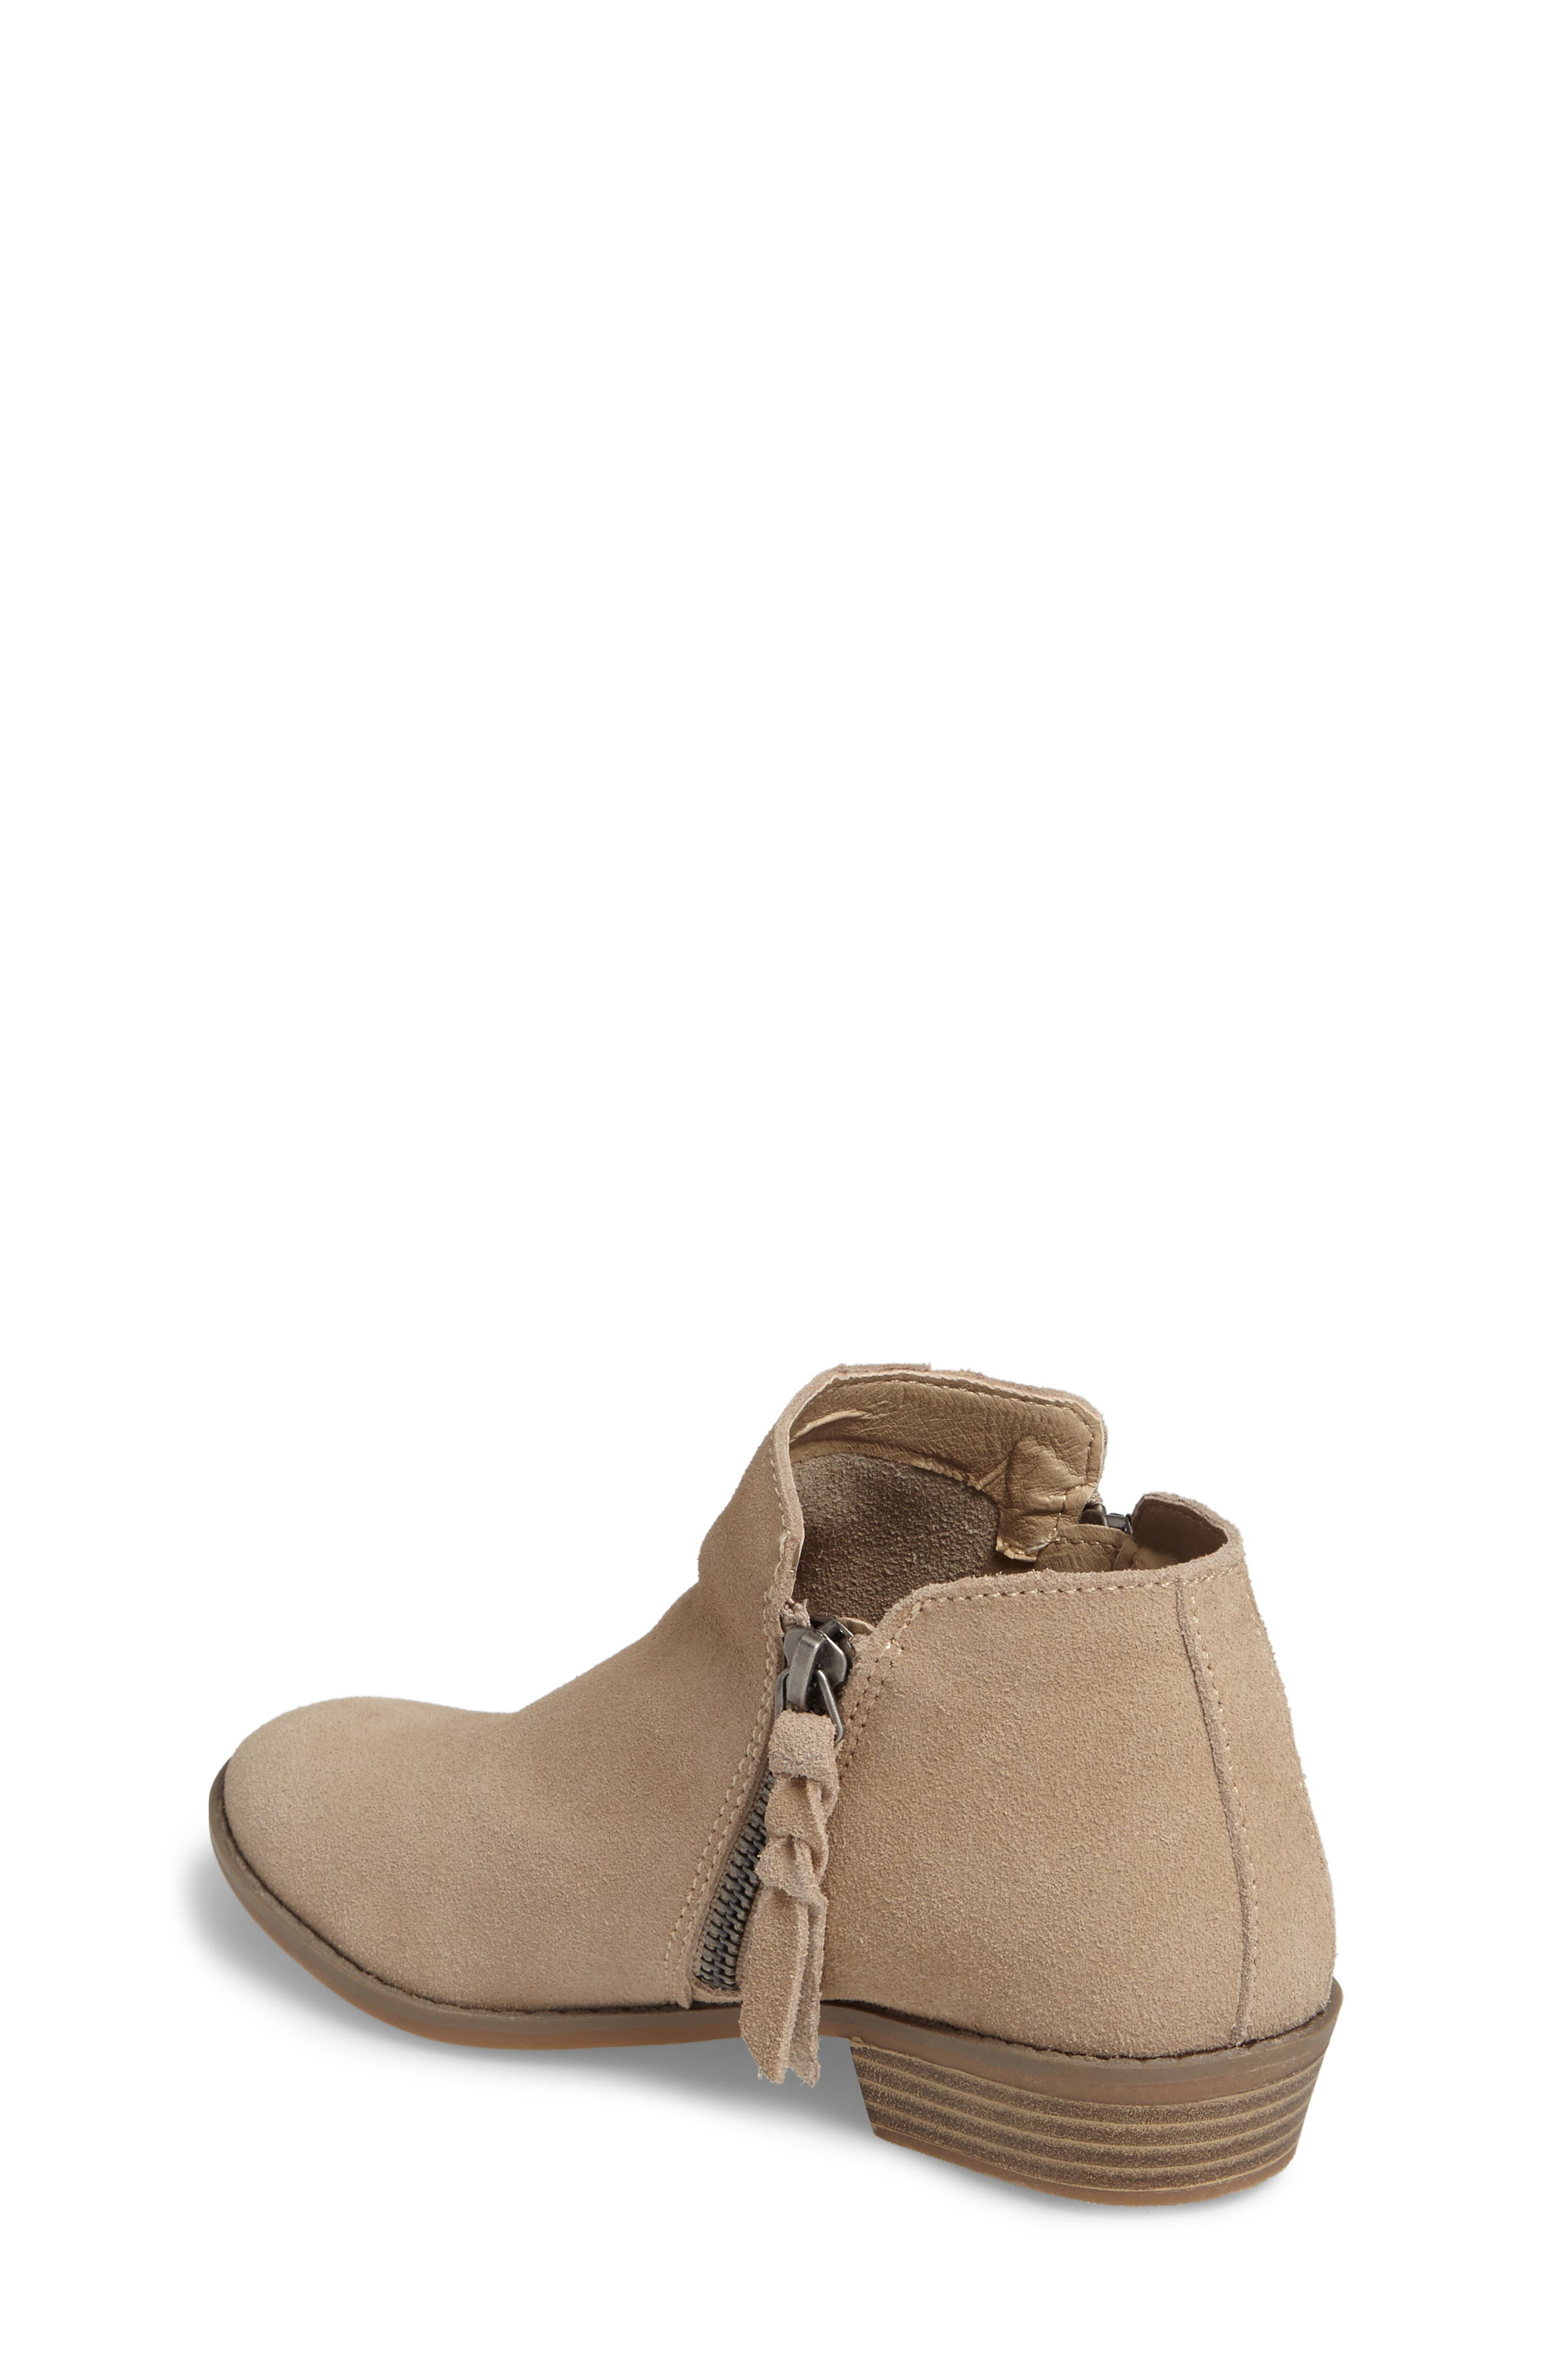 Sia Double-Zip Bootie,                             Alternate thumbnail 2, color,                             Sand Suede